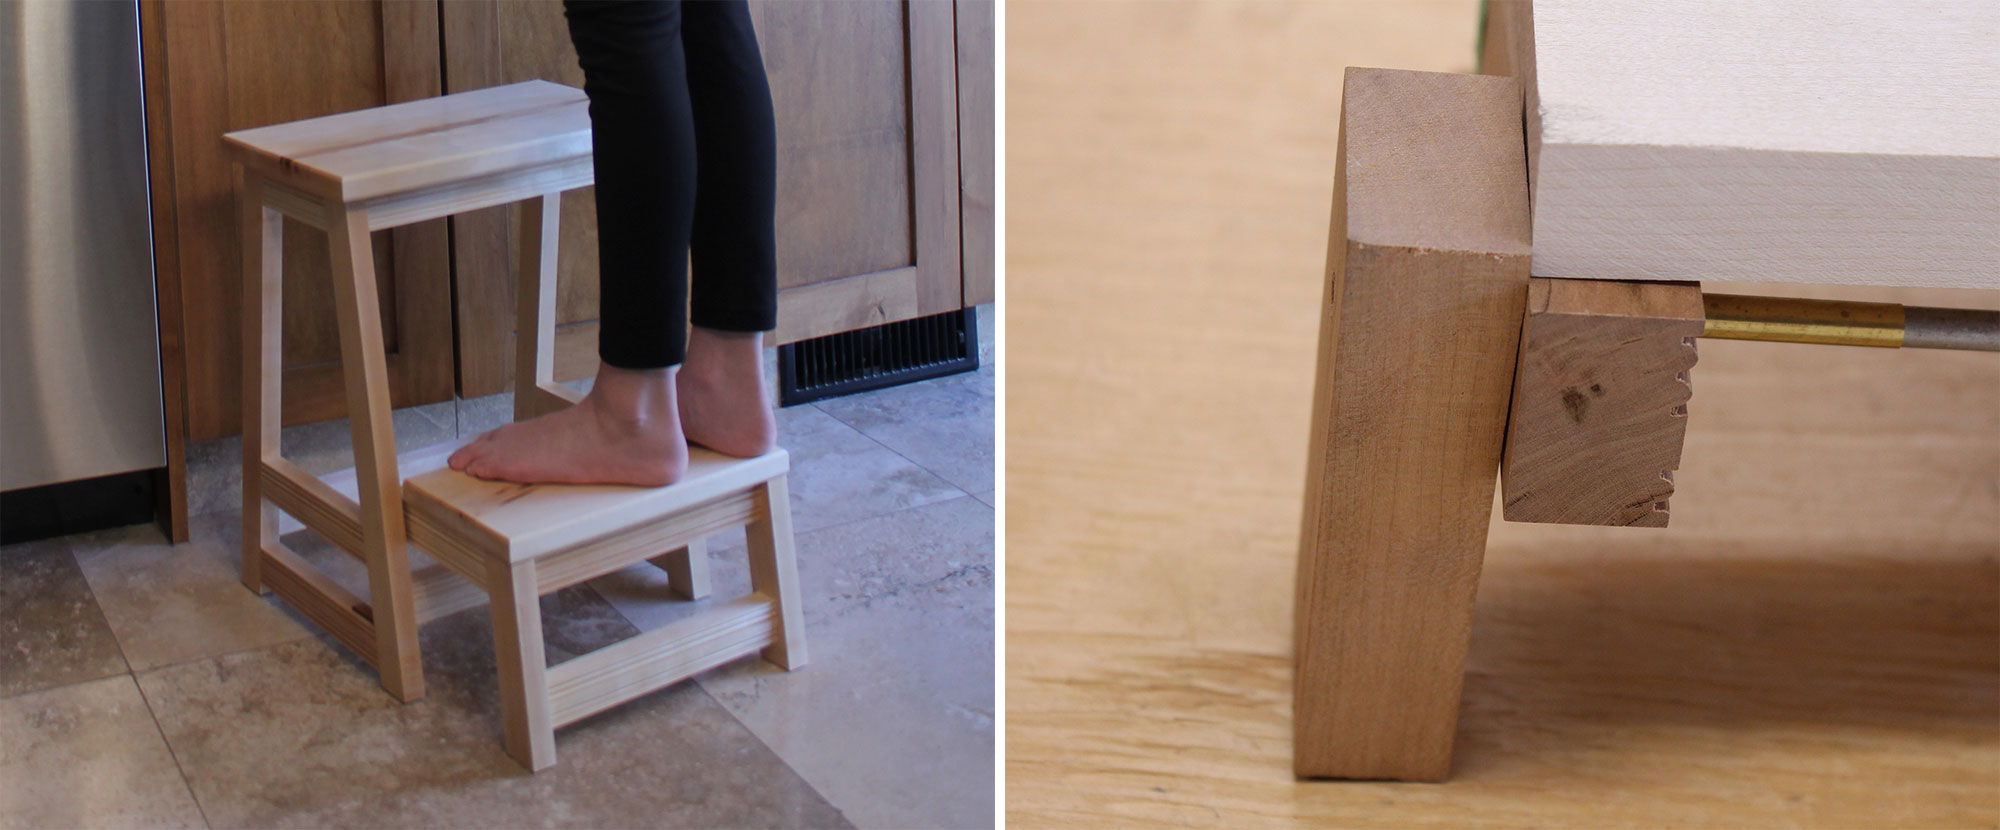 Left: A young girl standing on a stool with a hinged step. Right: The pin-hinge system for the stool was stress-tested using a mock-up.